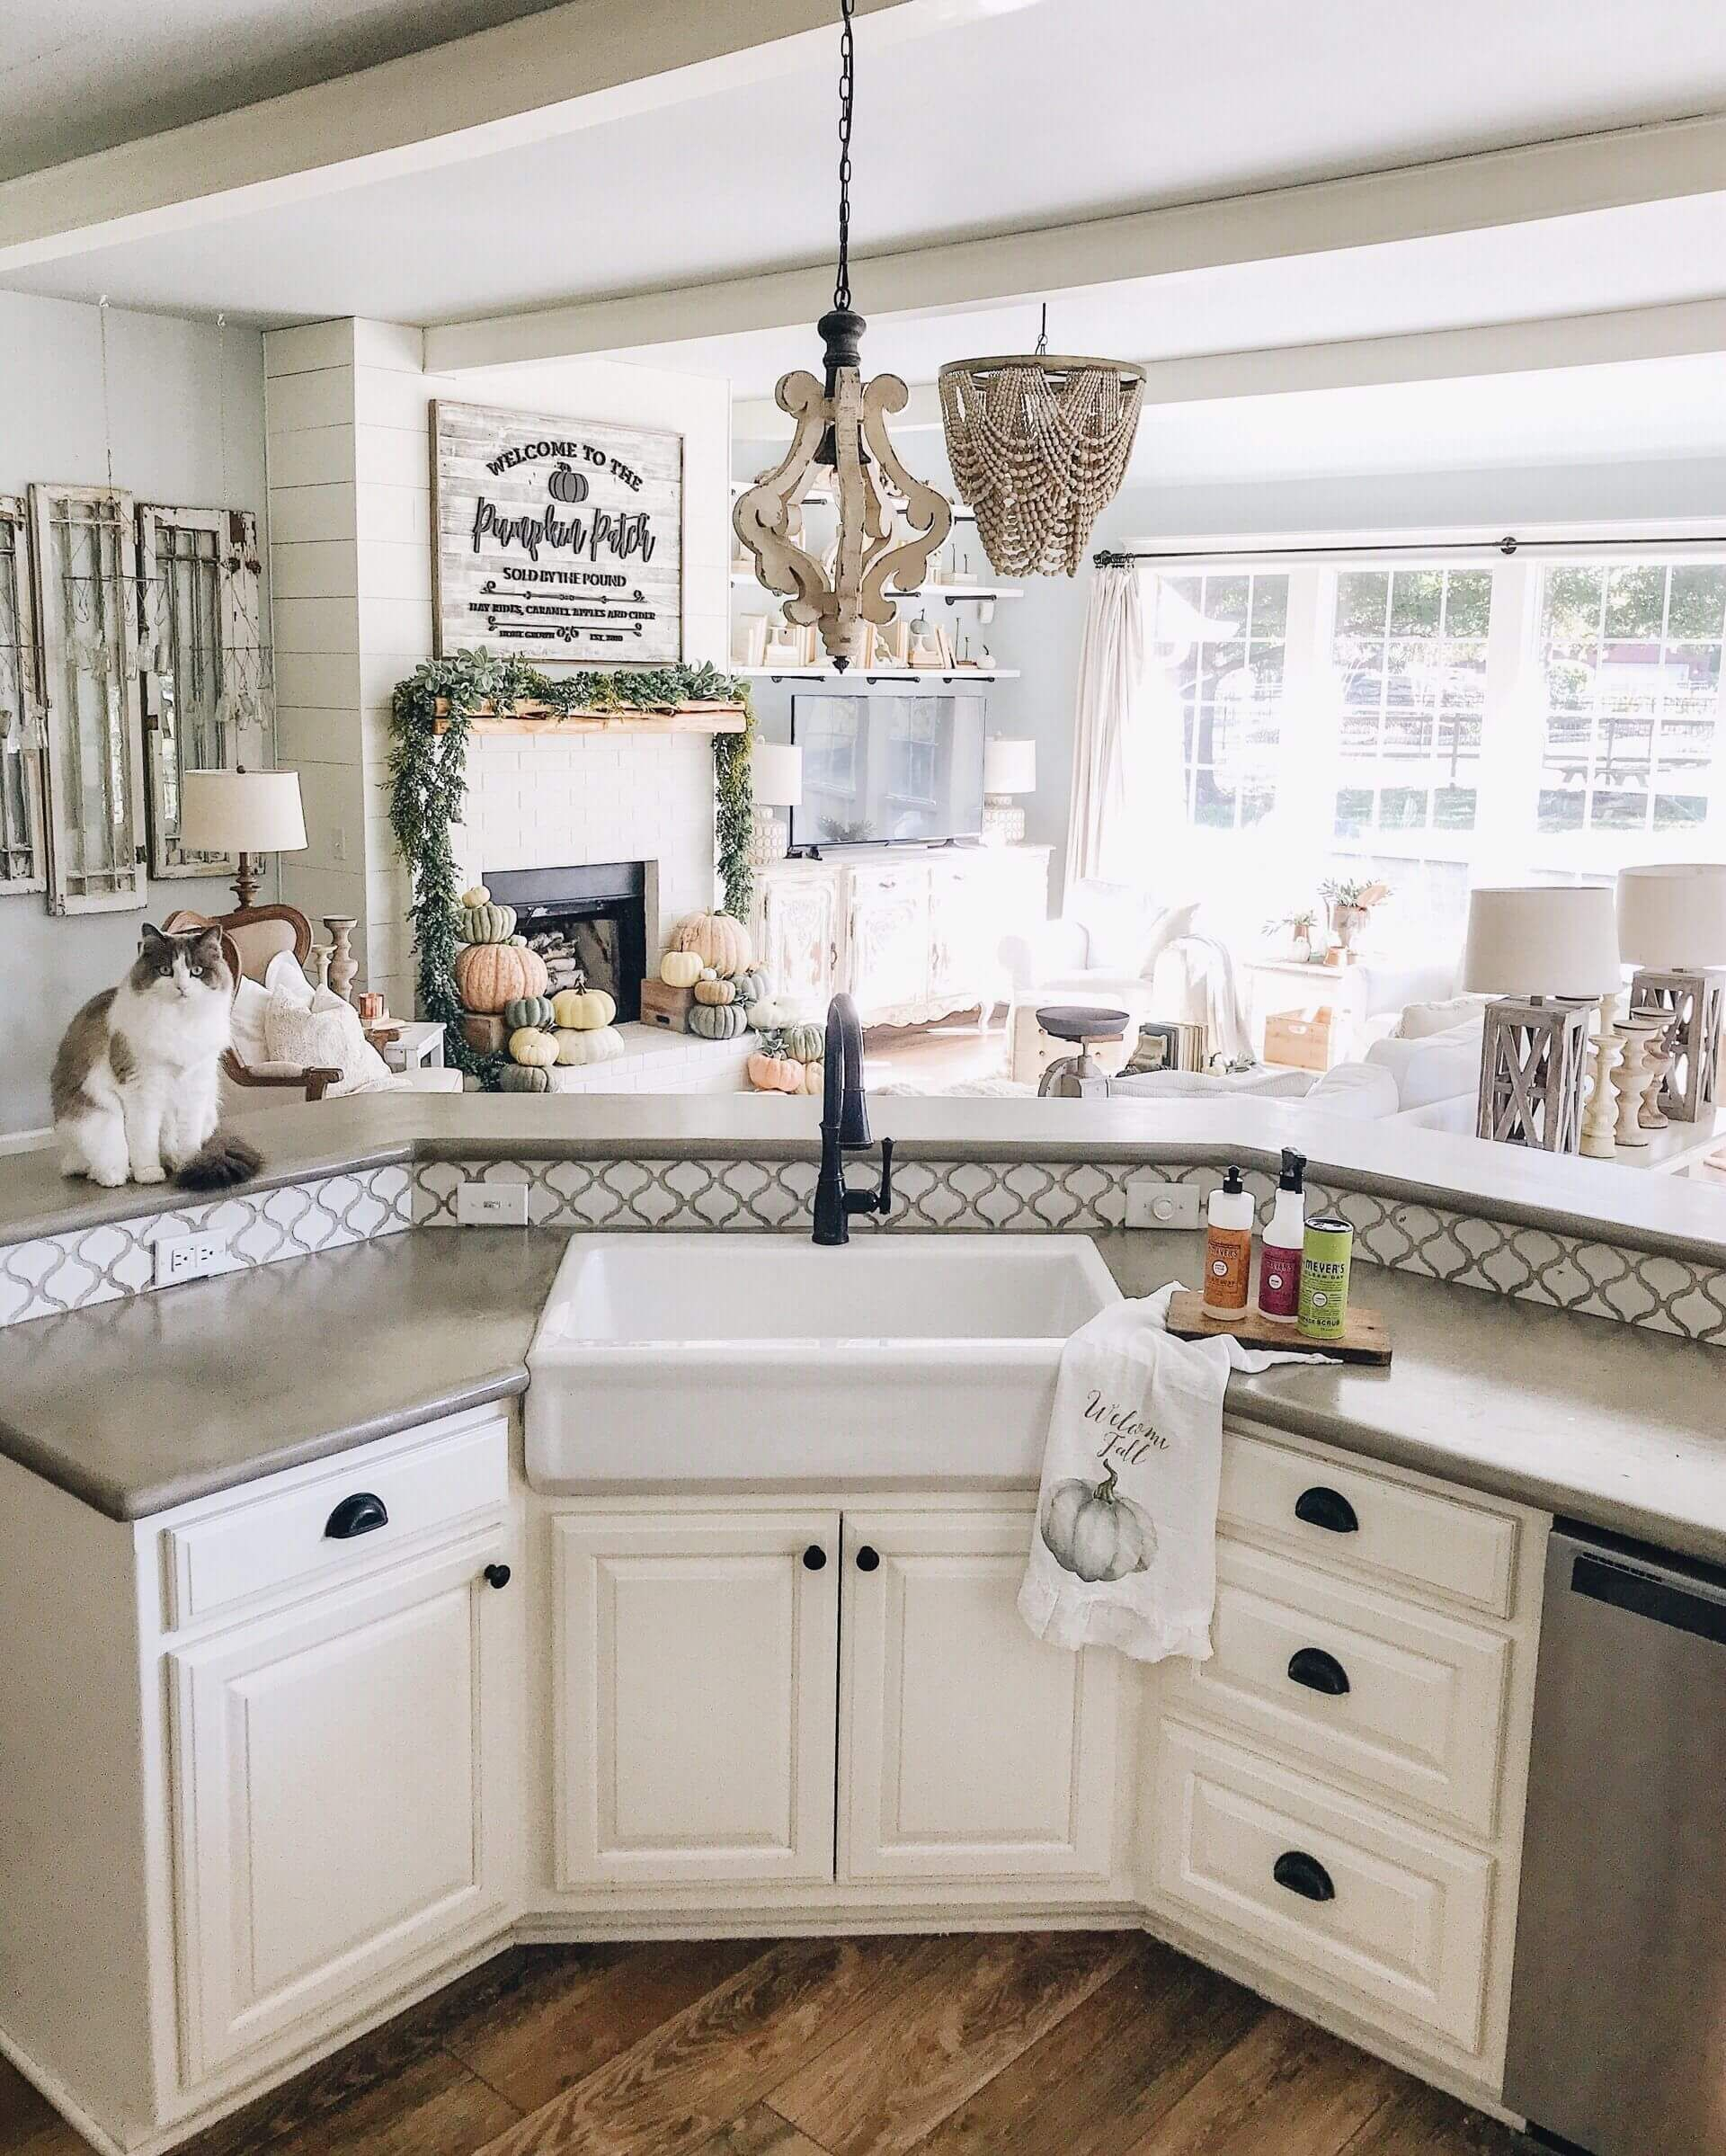 26 Farmhouse Kitchen Sink Ideas That Will Make Your Space